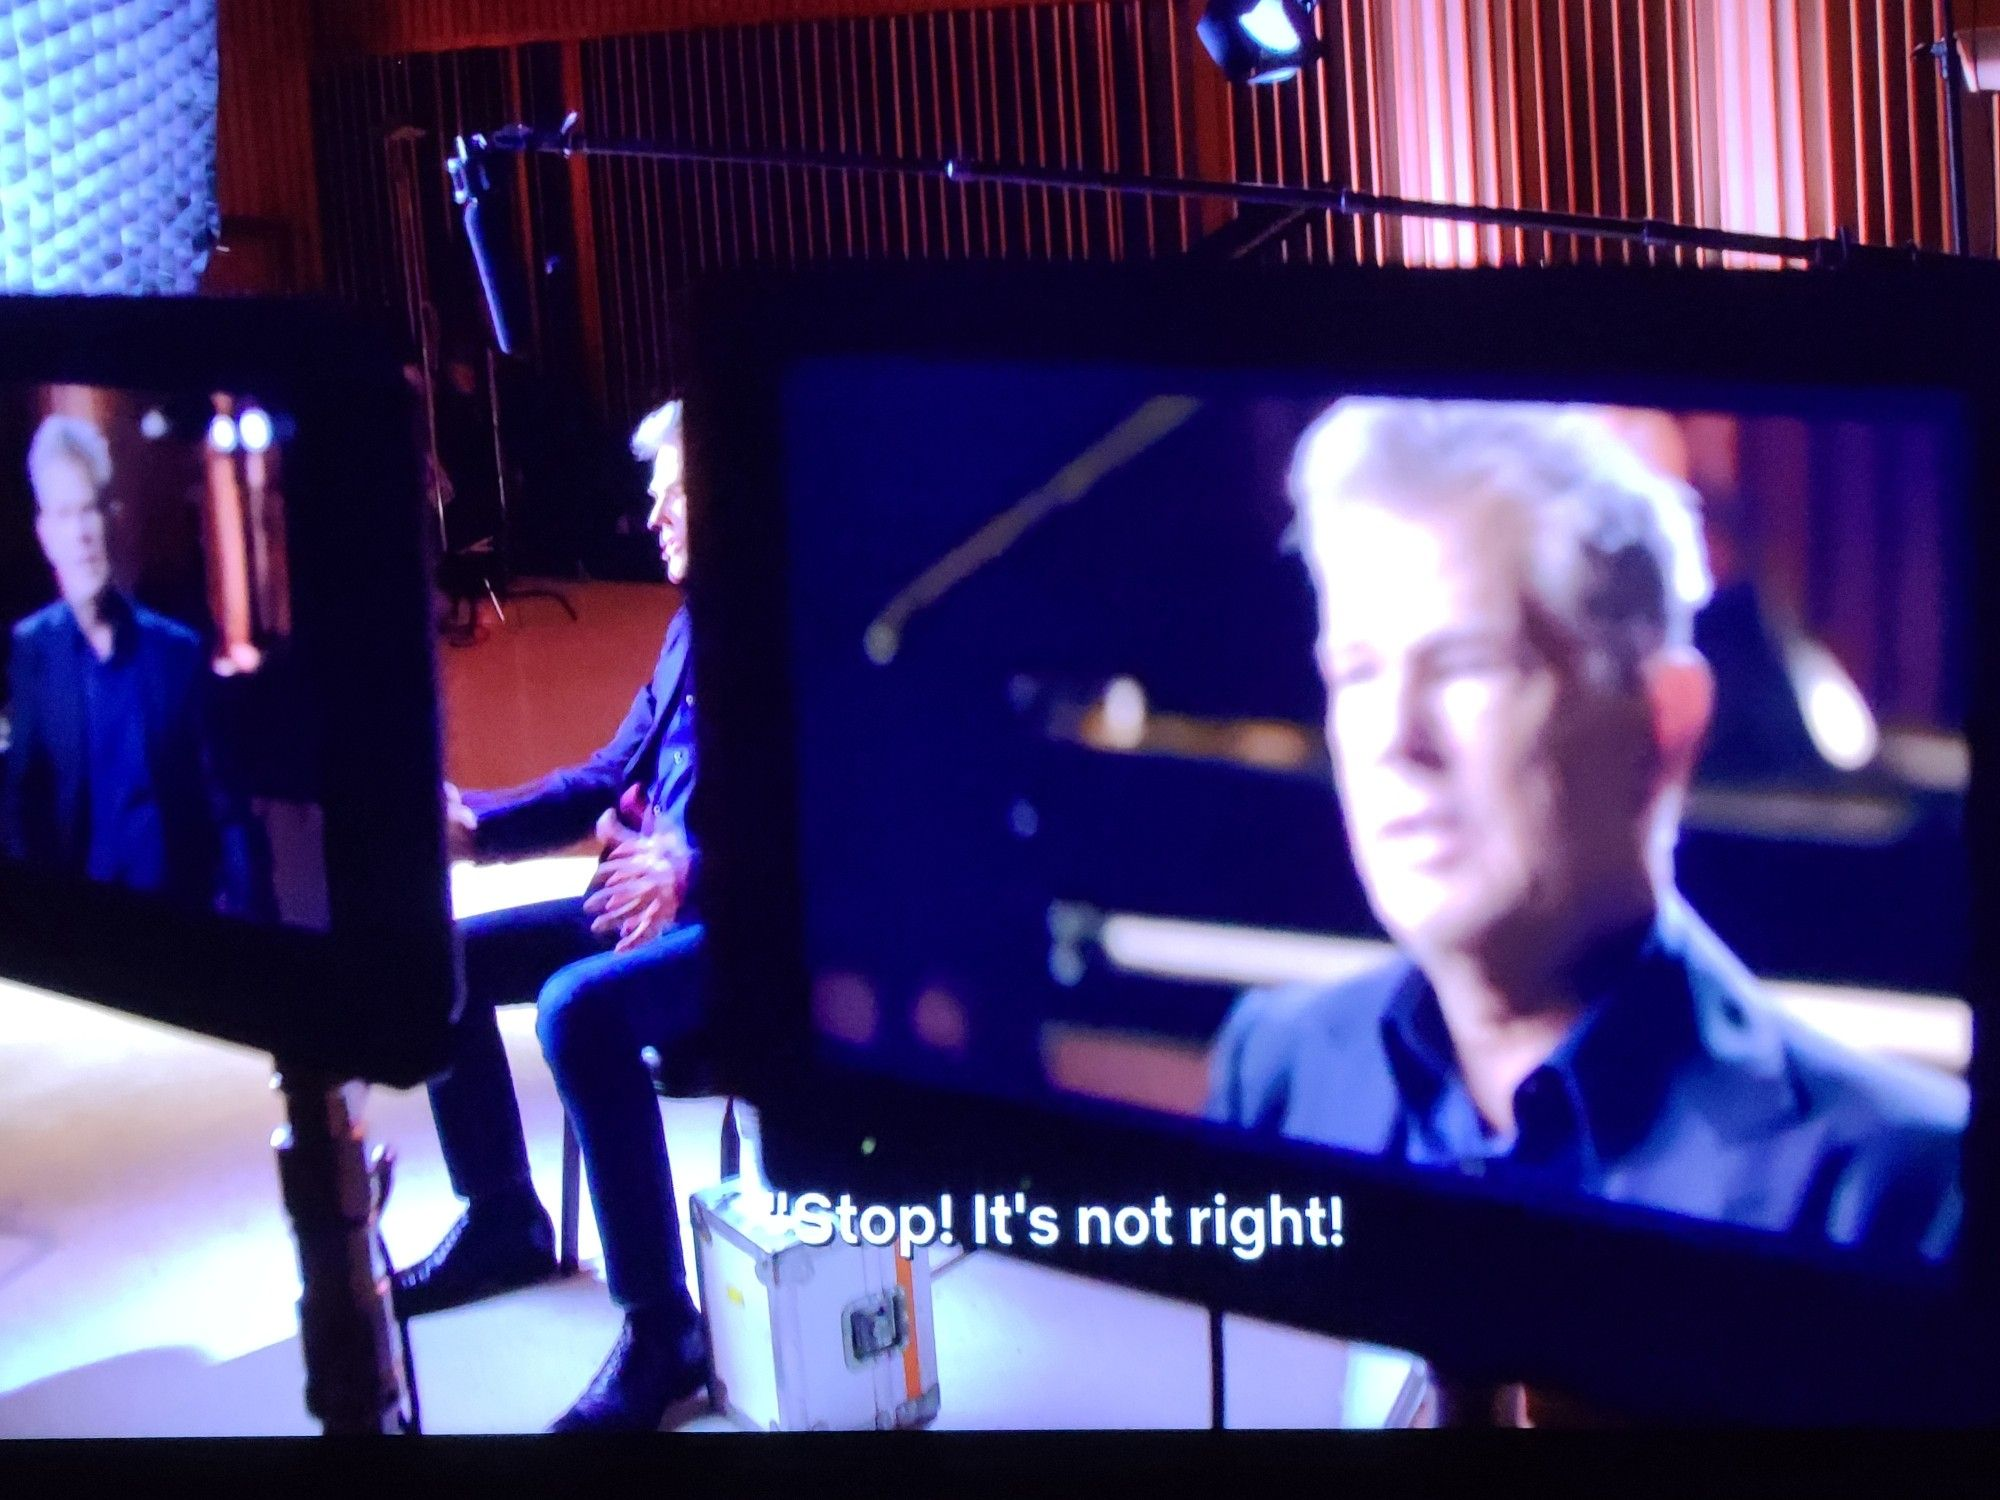 Watching Some Documentaries Tonight Currently Watching David Foster On Netflix Findit Rightnow In 2020 Documentaries The Fosters Netflix